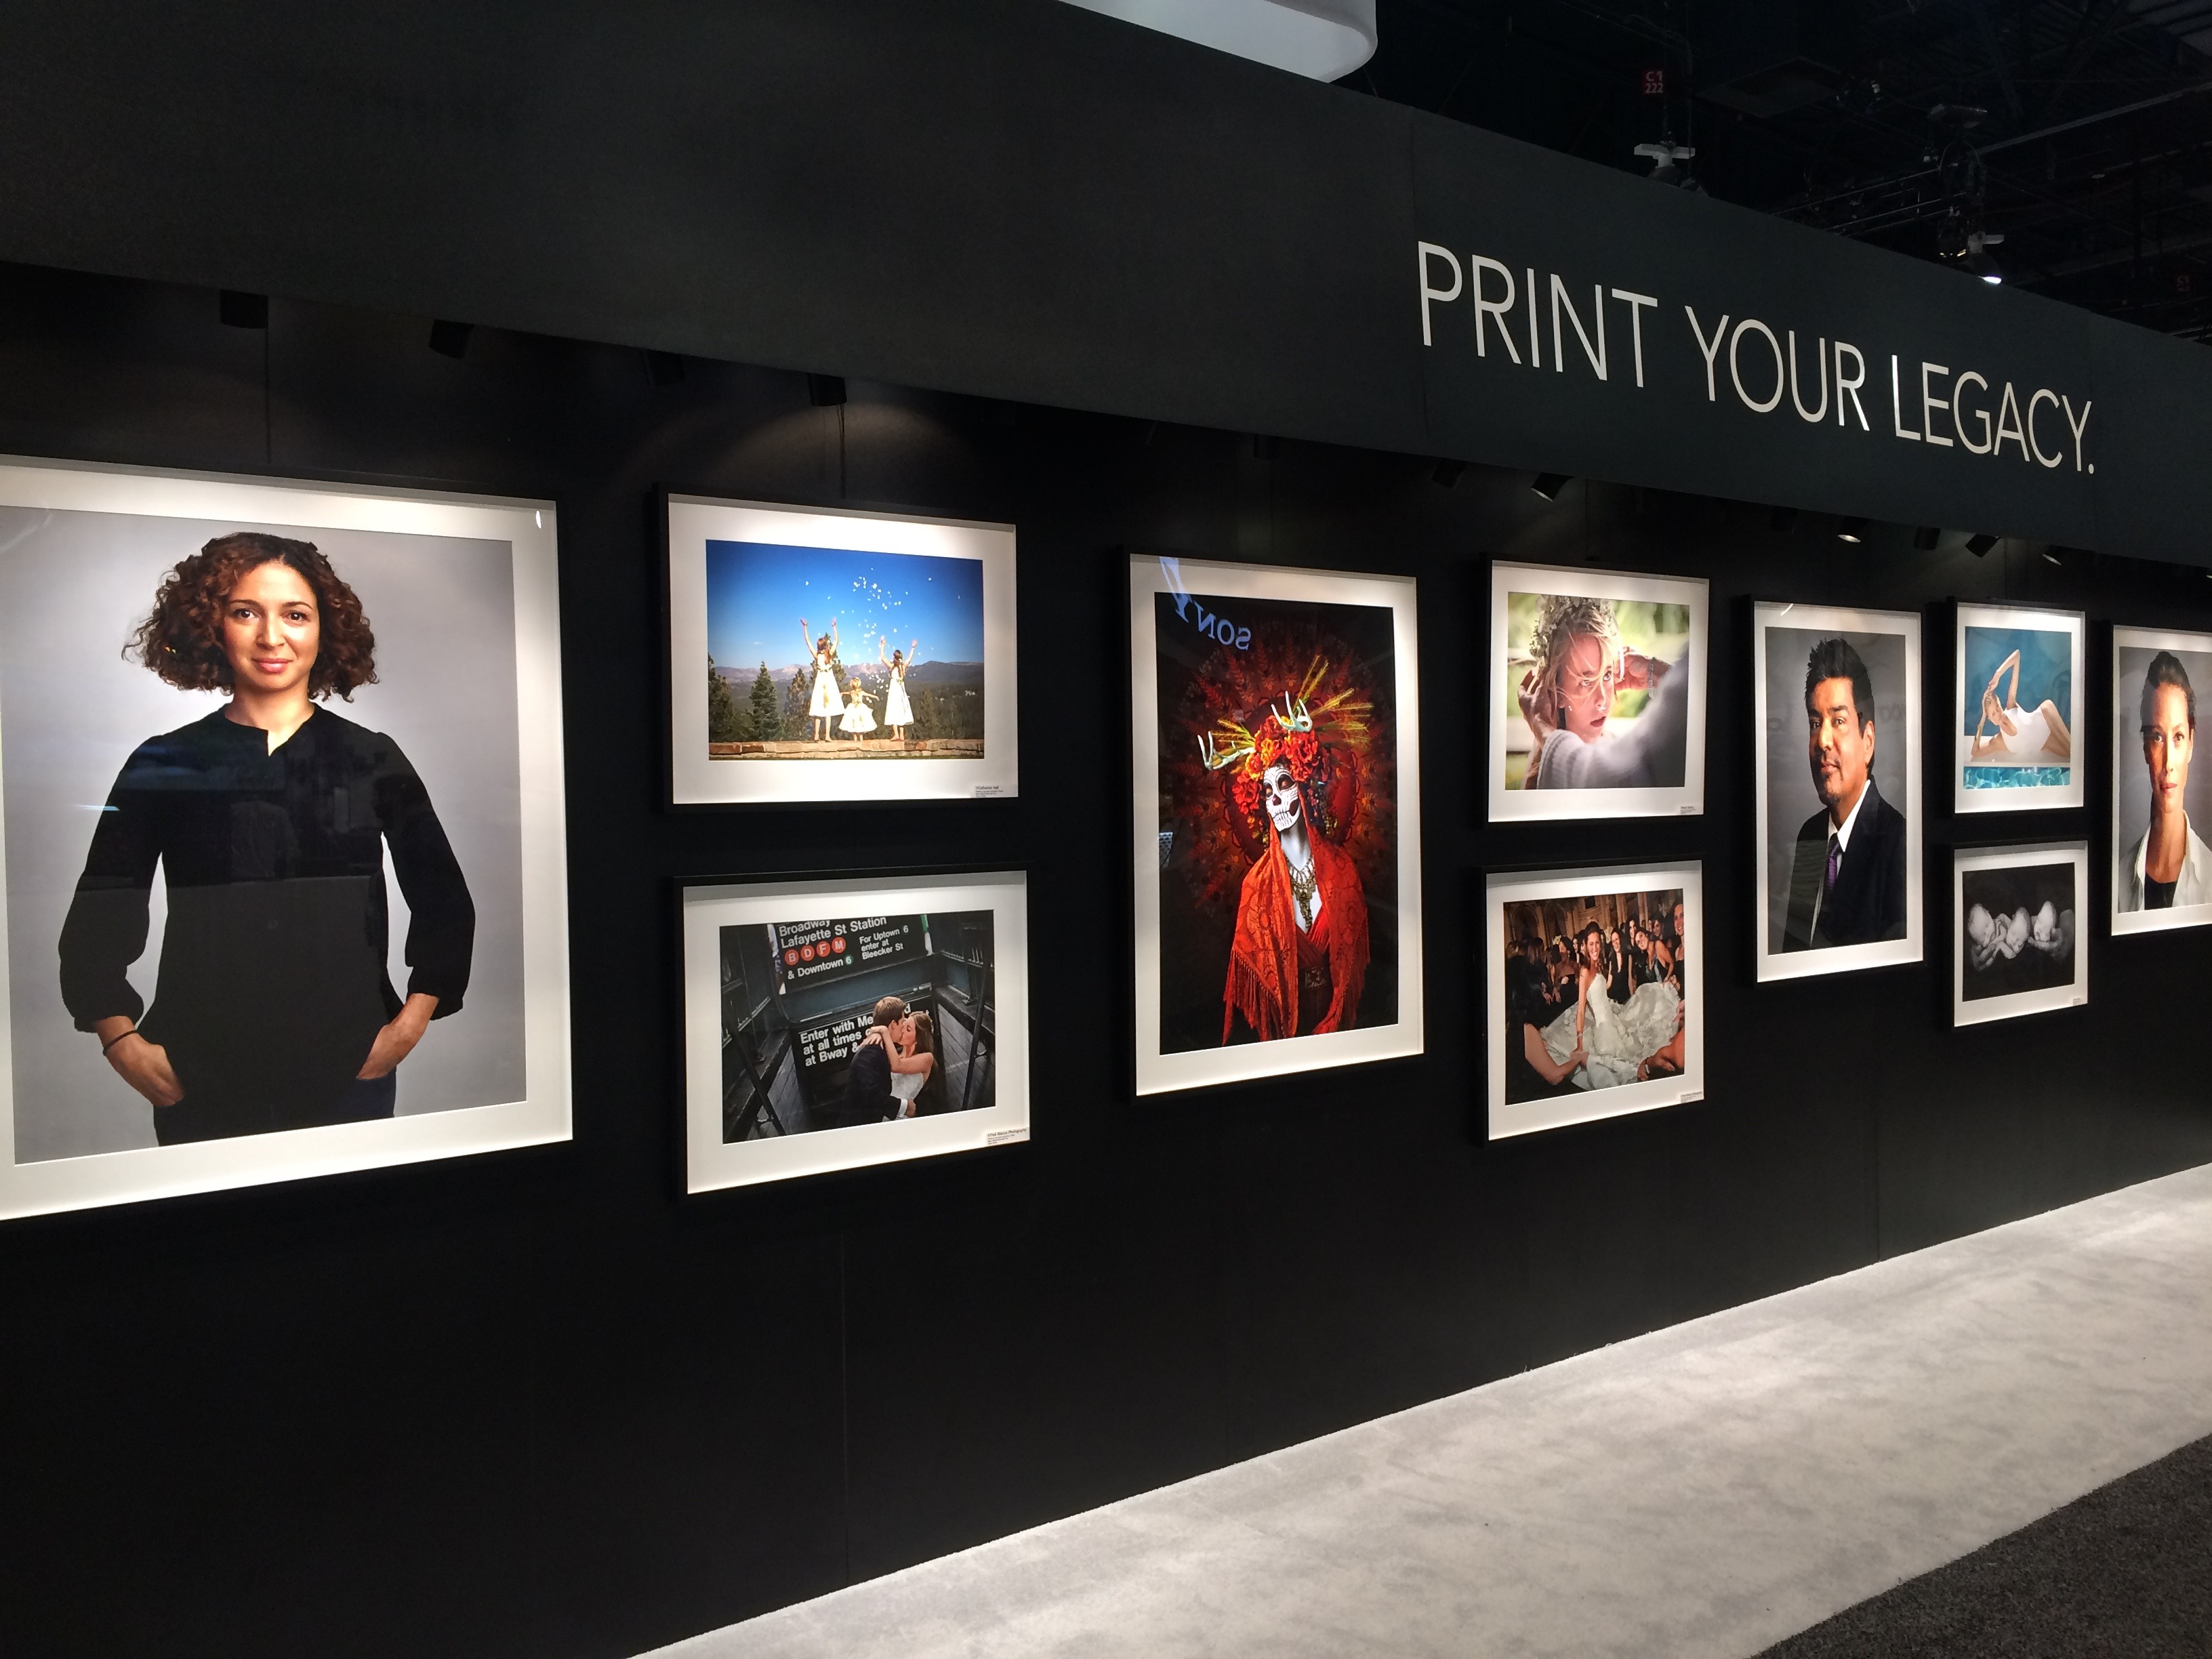 Professional Prints on display at the Wedding and Portrait Photography Expo in Las Vegas 2017